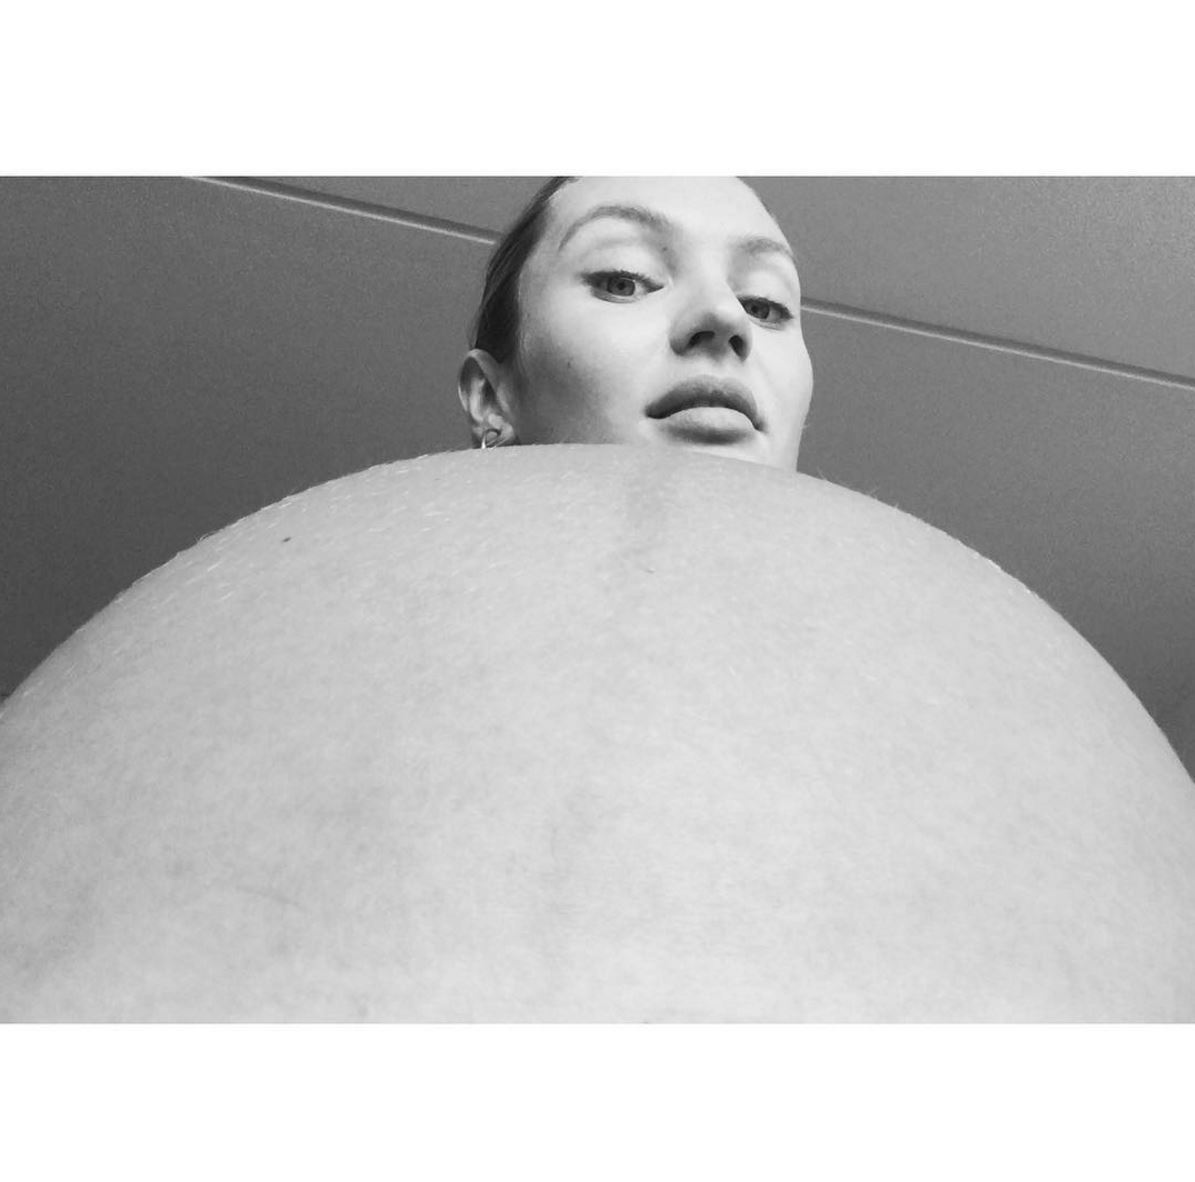 Victoria's Secret Angel, Candice Swanepoel, shared a creative image of her baby bump on Instagram.